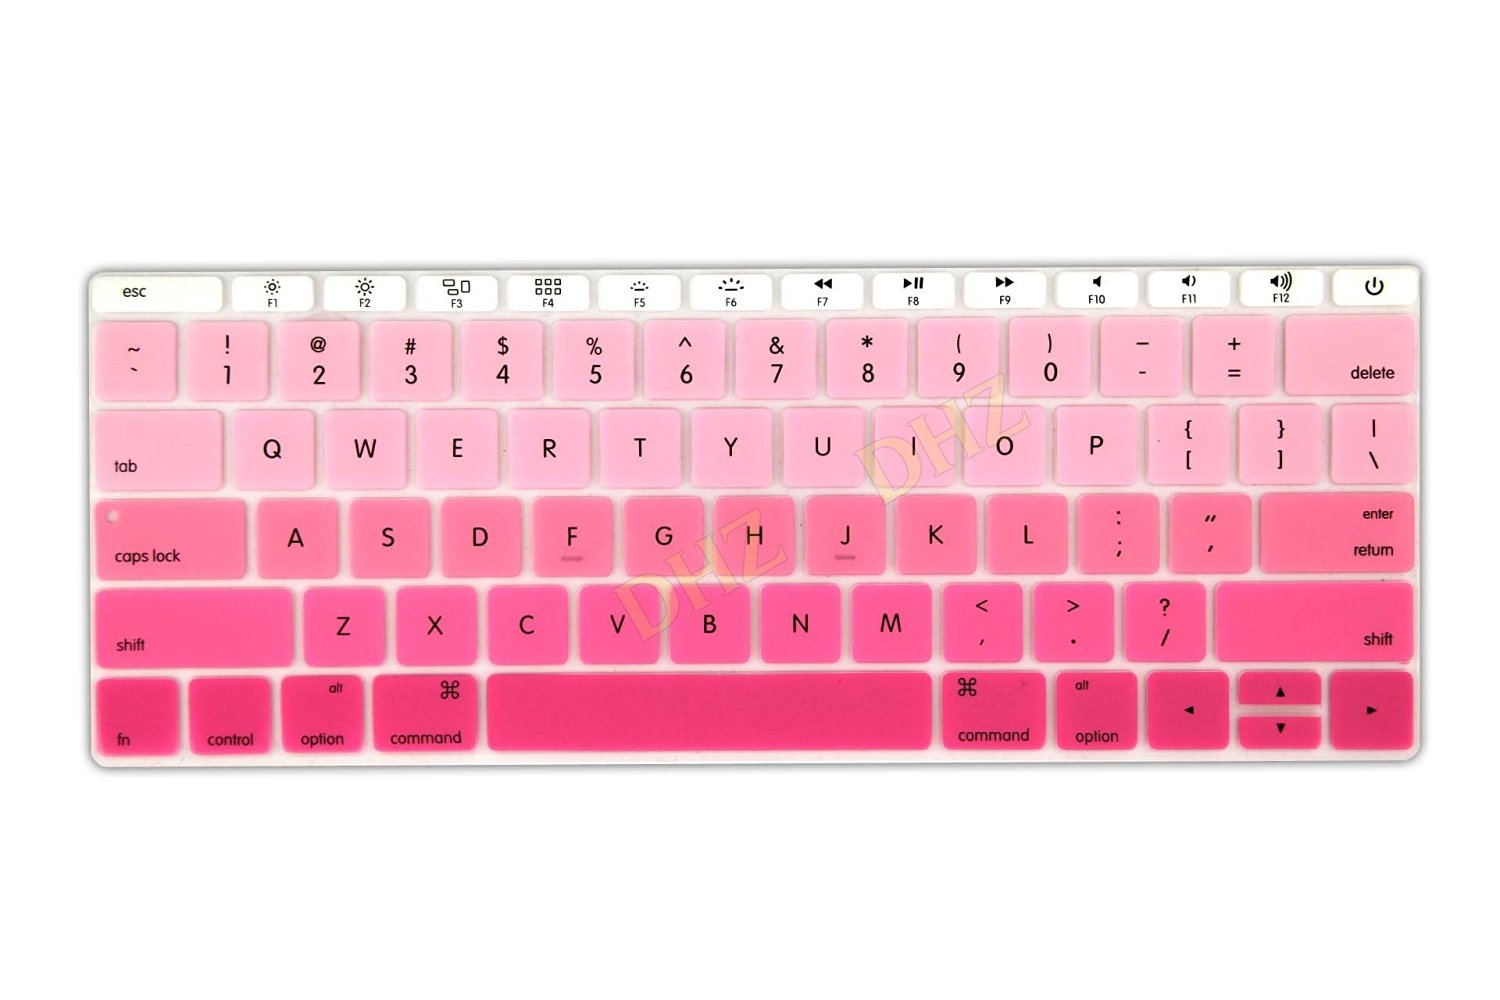 "DHZ Hot Pink Gradient Keyboard Cover Silicone Skin for New Macbook 12"" with Retina Display (2015 Model A1534) and New MacBook Pro 13 Inch (2016 Newest Version Model A1708, No Touch Bar)"